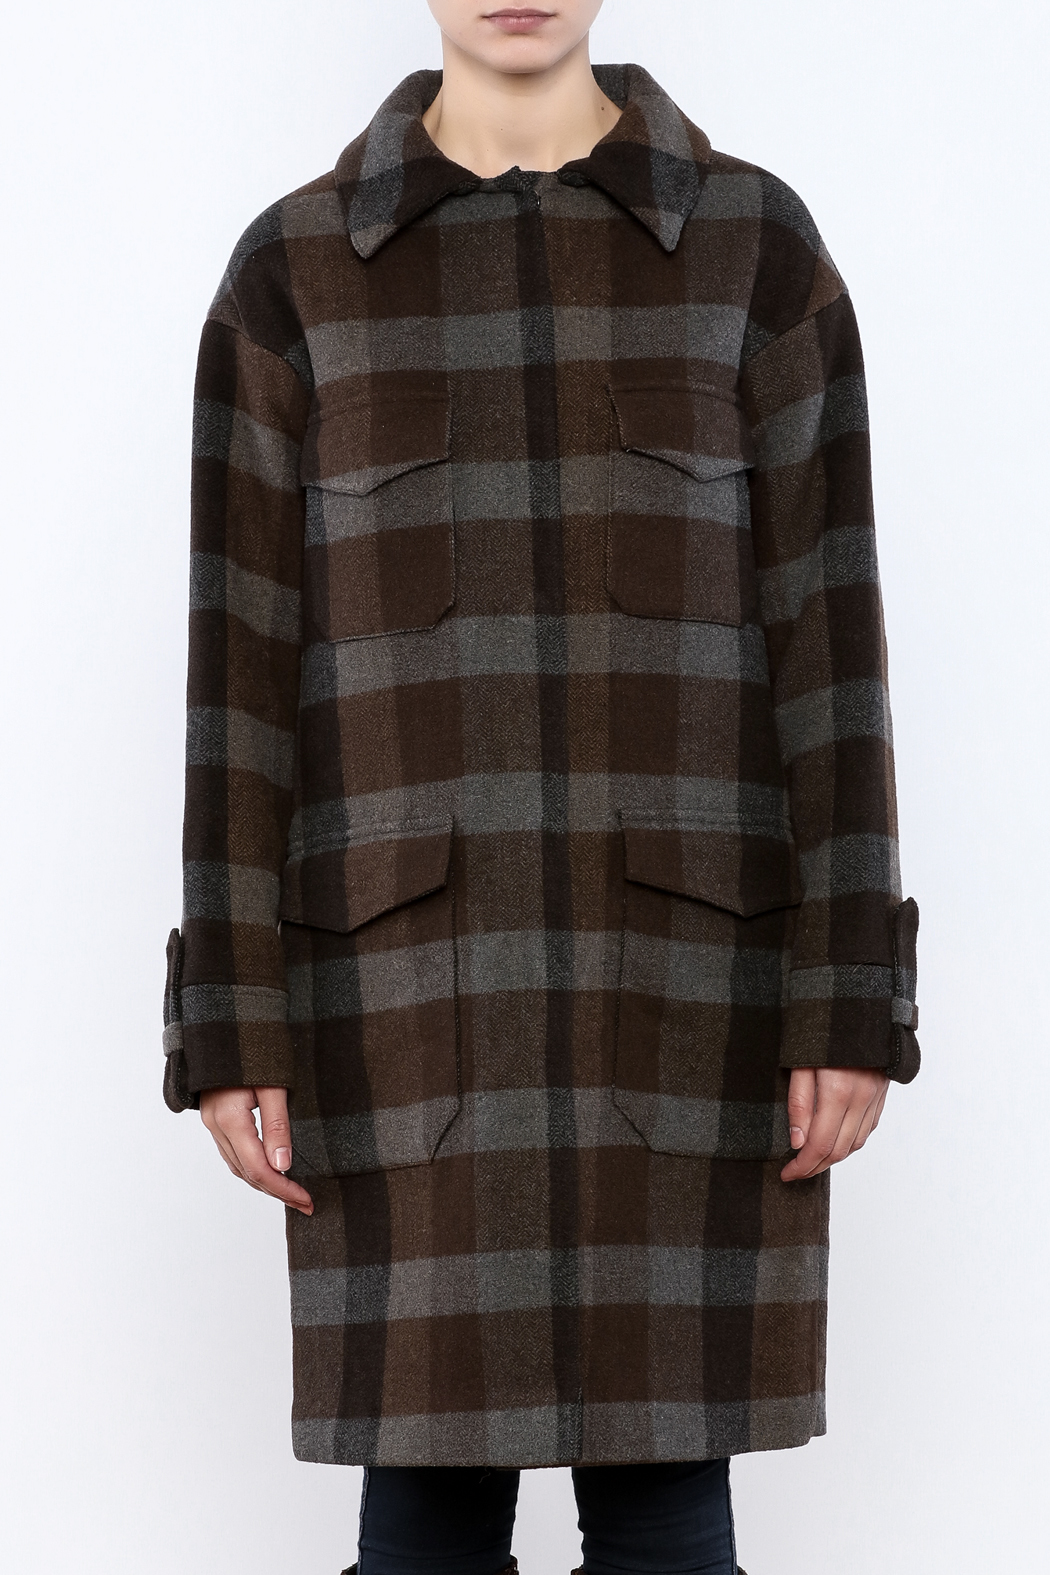 Hoss Intropia Checked Plaid Coat - Side Cropped Image